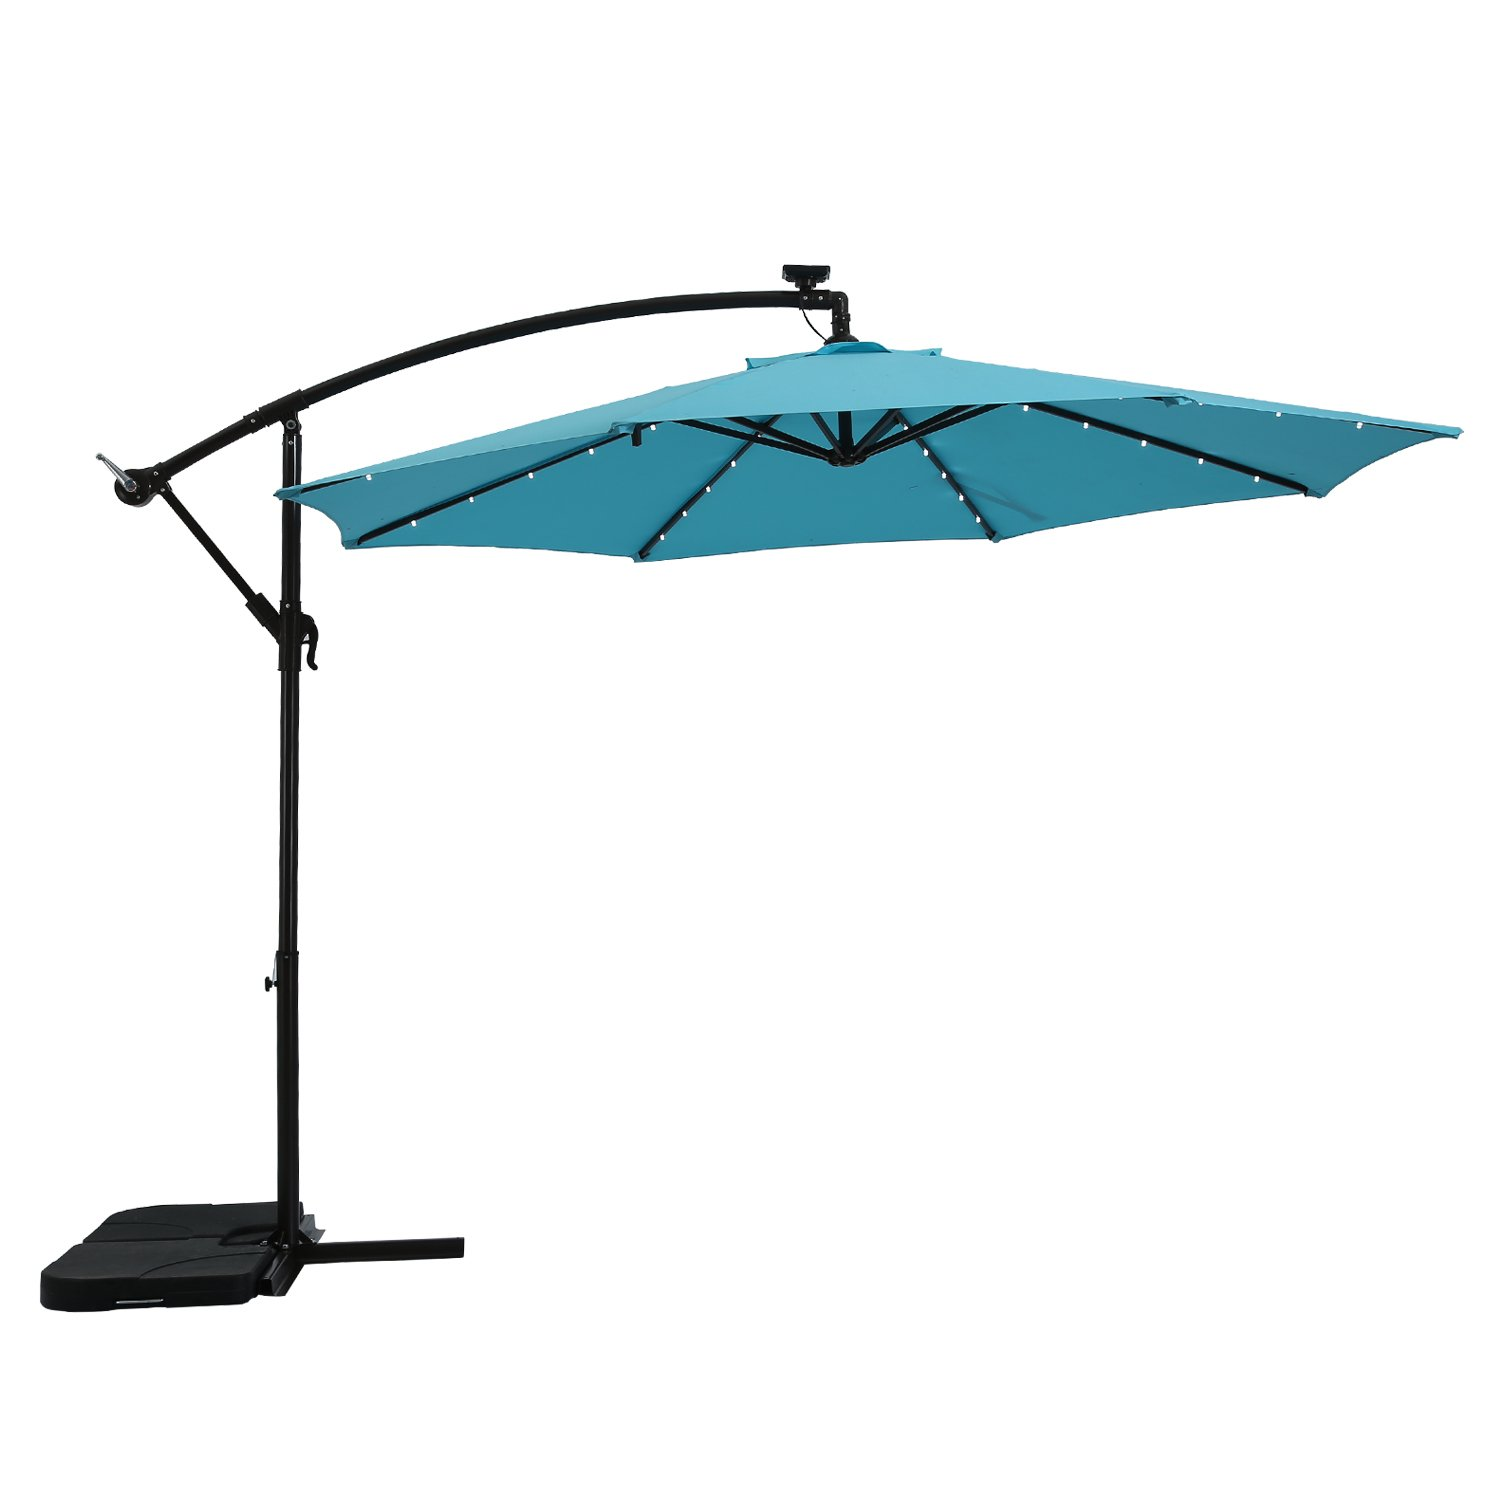 Paulla 10Ft LED Lighted Hanging Offset Umbrella Outdoor Cantilever Market Umbrella with Crank, 8 Ribs (Sky Blue)